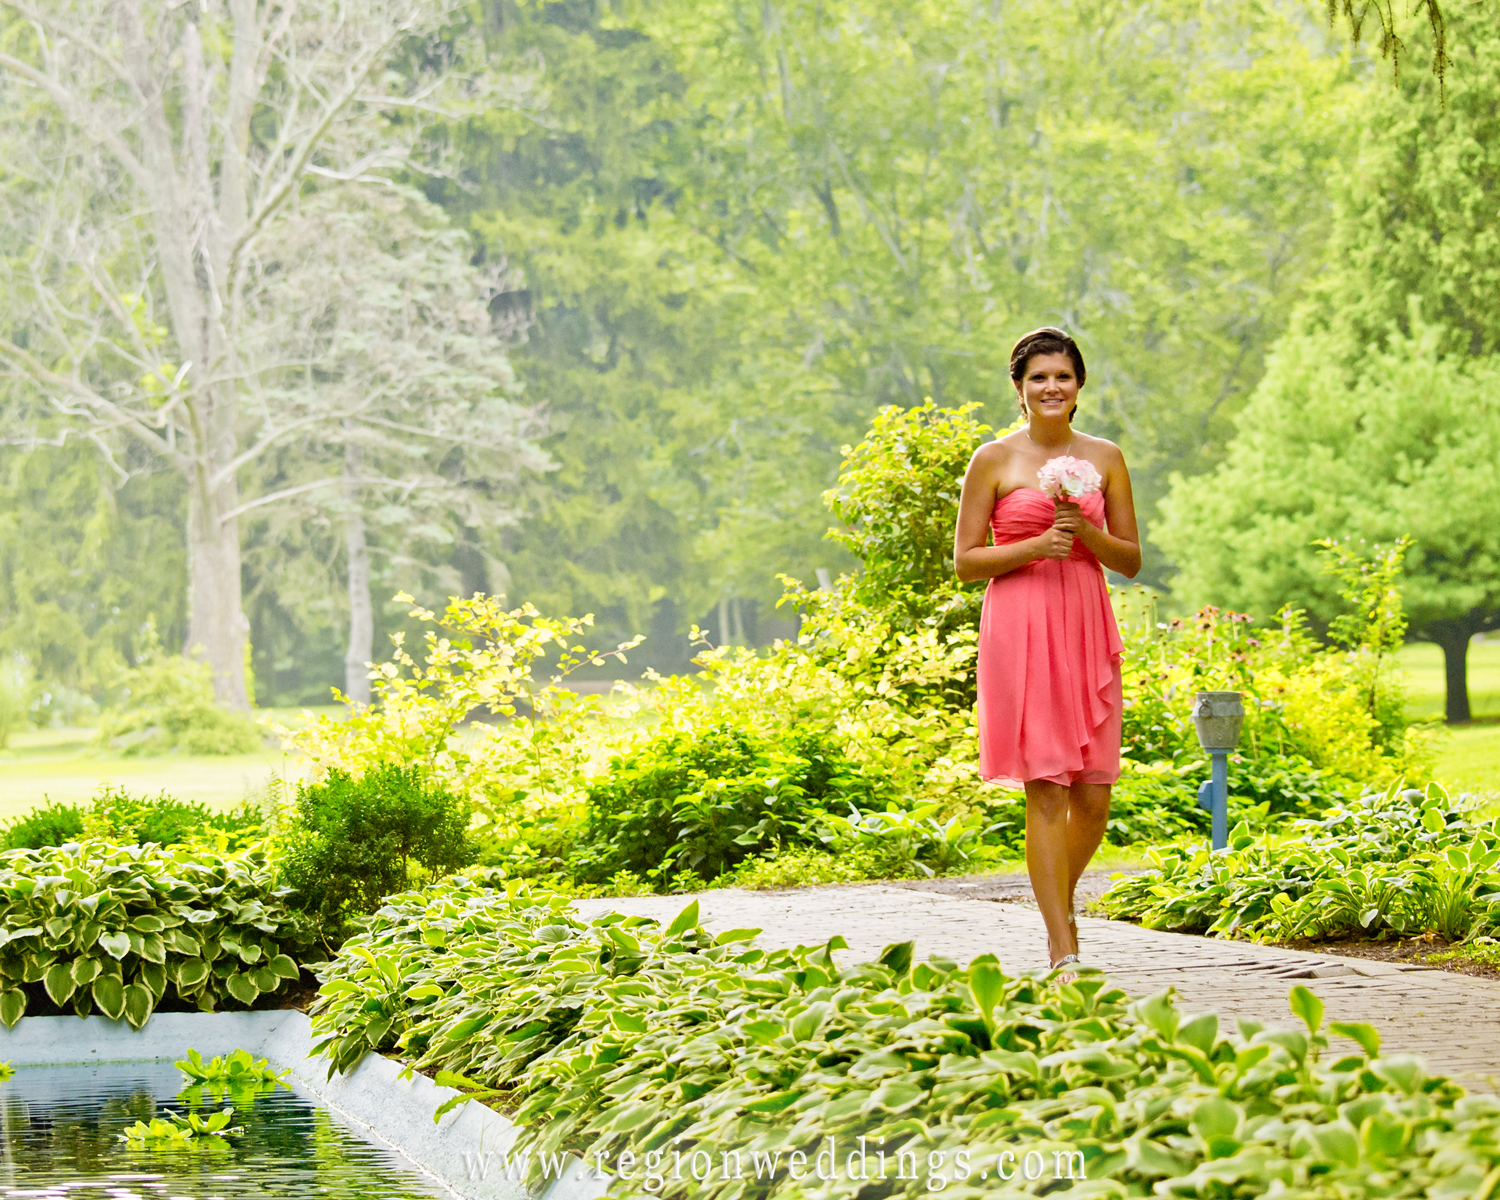 A bridesmaid walks along a path with a waterfall and gorgeous greenery in the background for an outdoor wedding at International Friendship Garden.